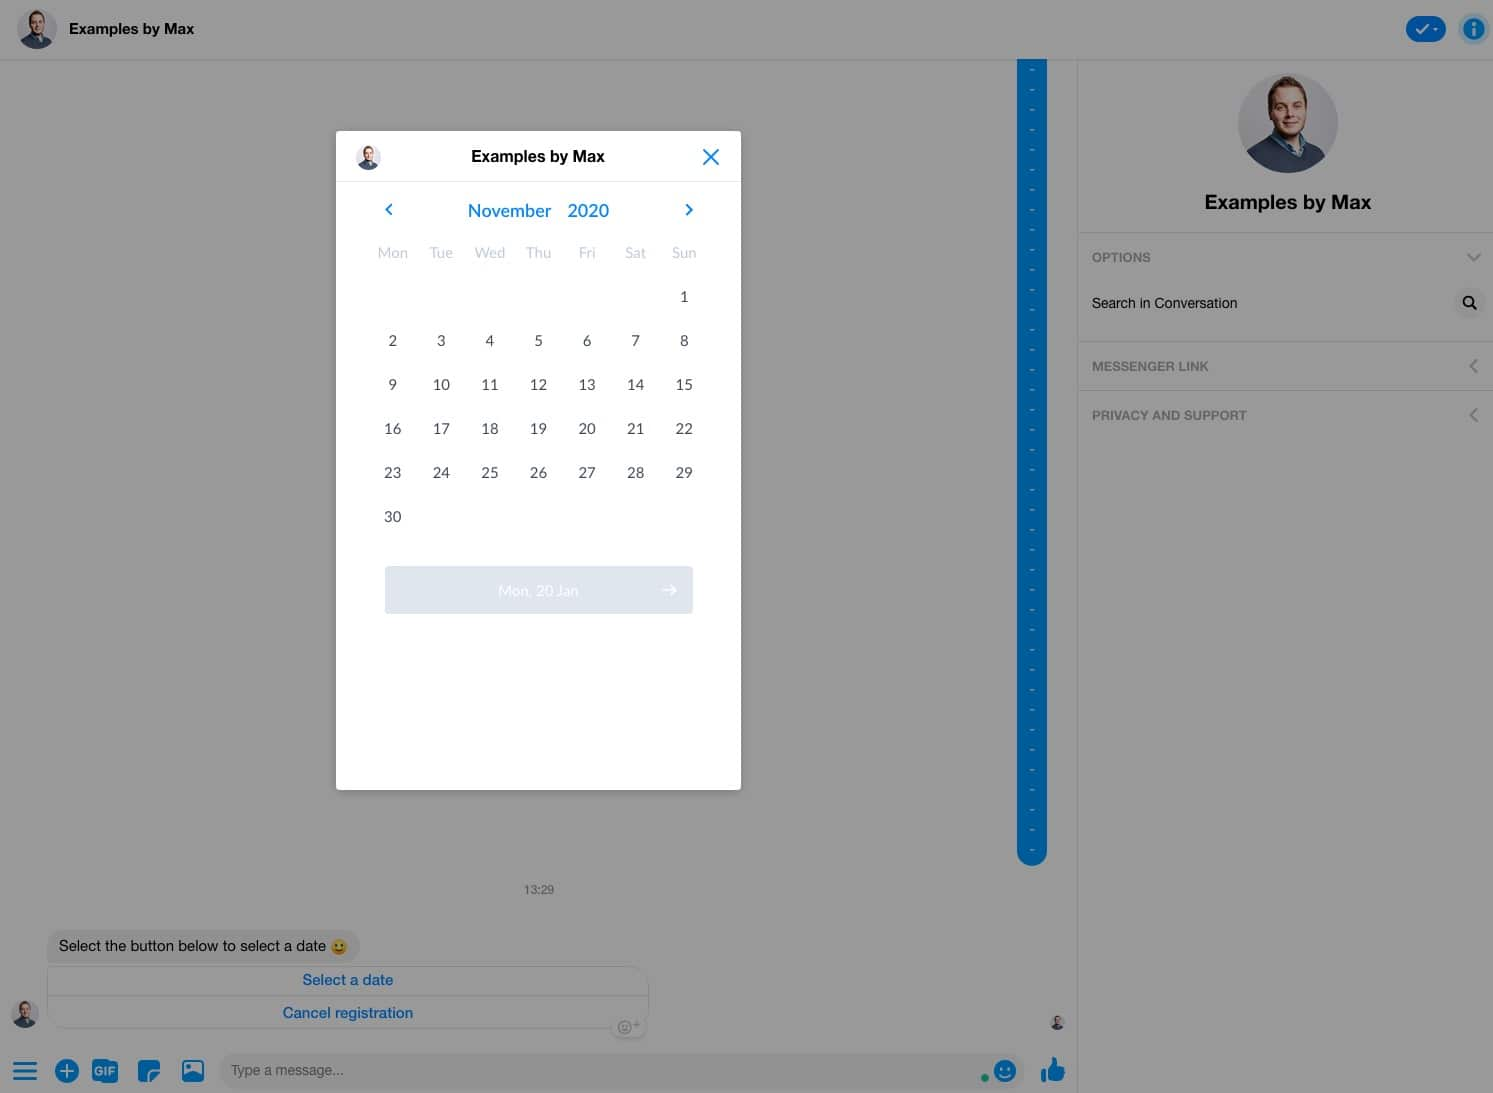 Example of a modal window in Messenger to select a date